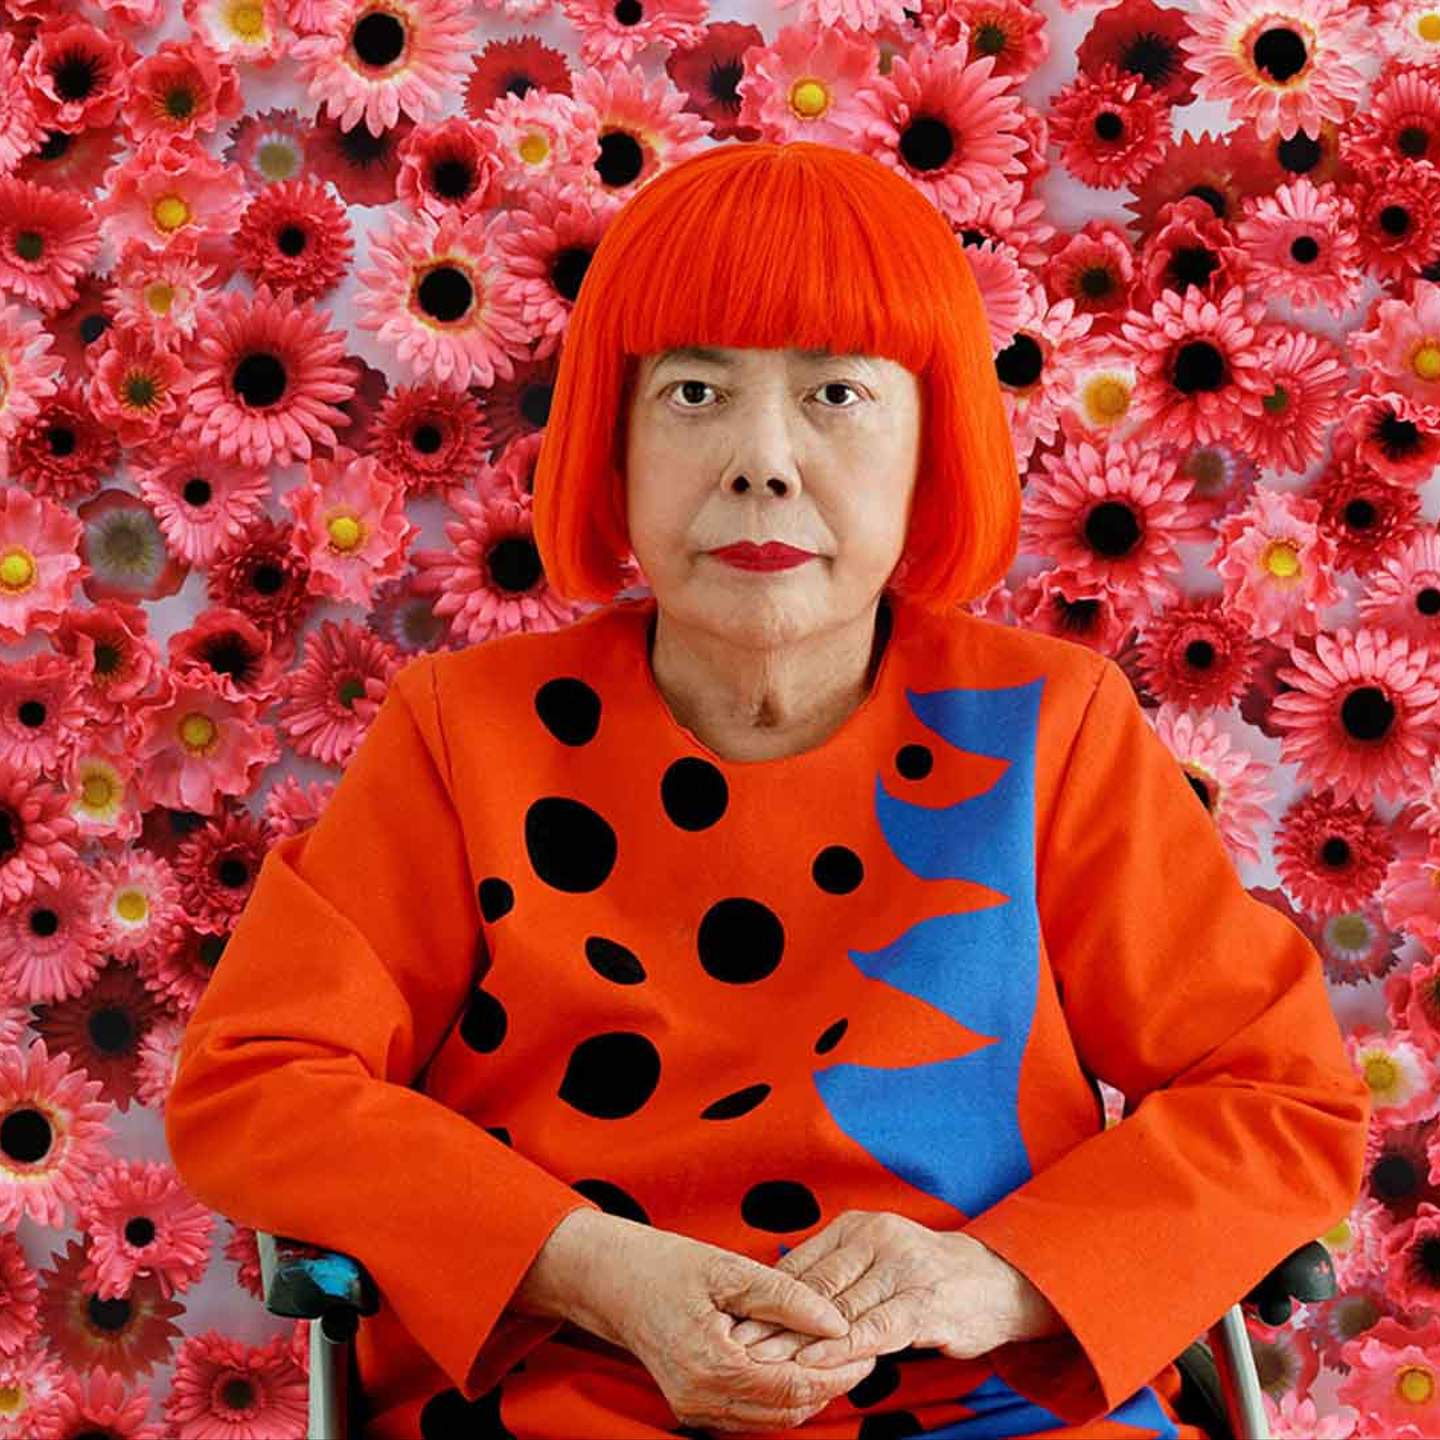 Yayoi Kusama Is Creating Her First Obliteration Greenhouse - Concrete Playground